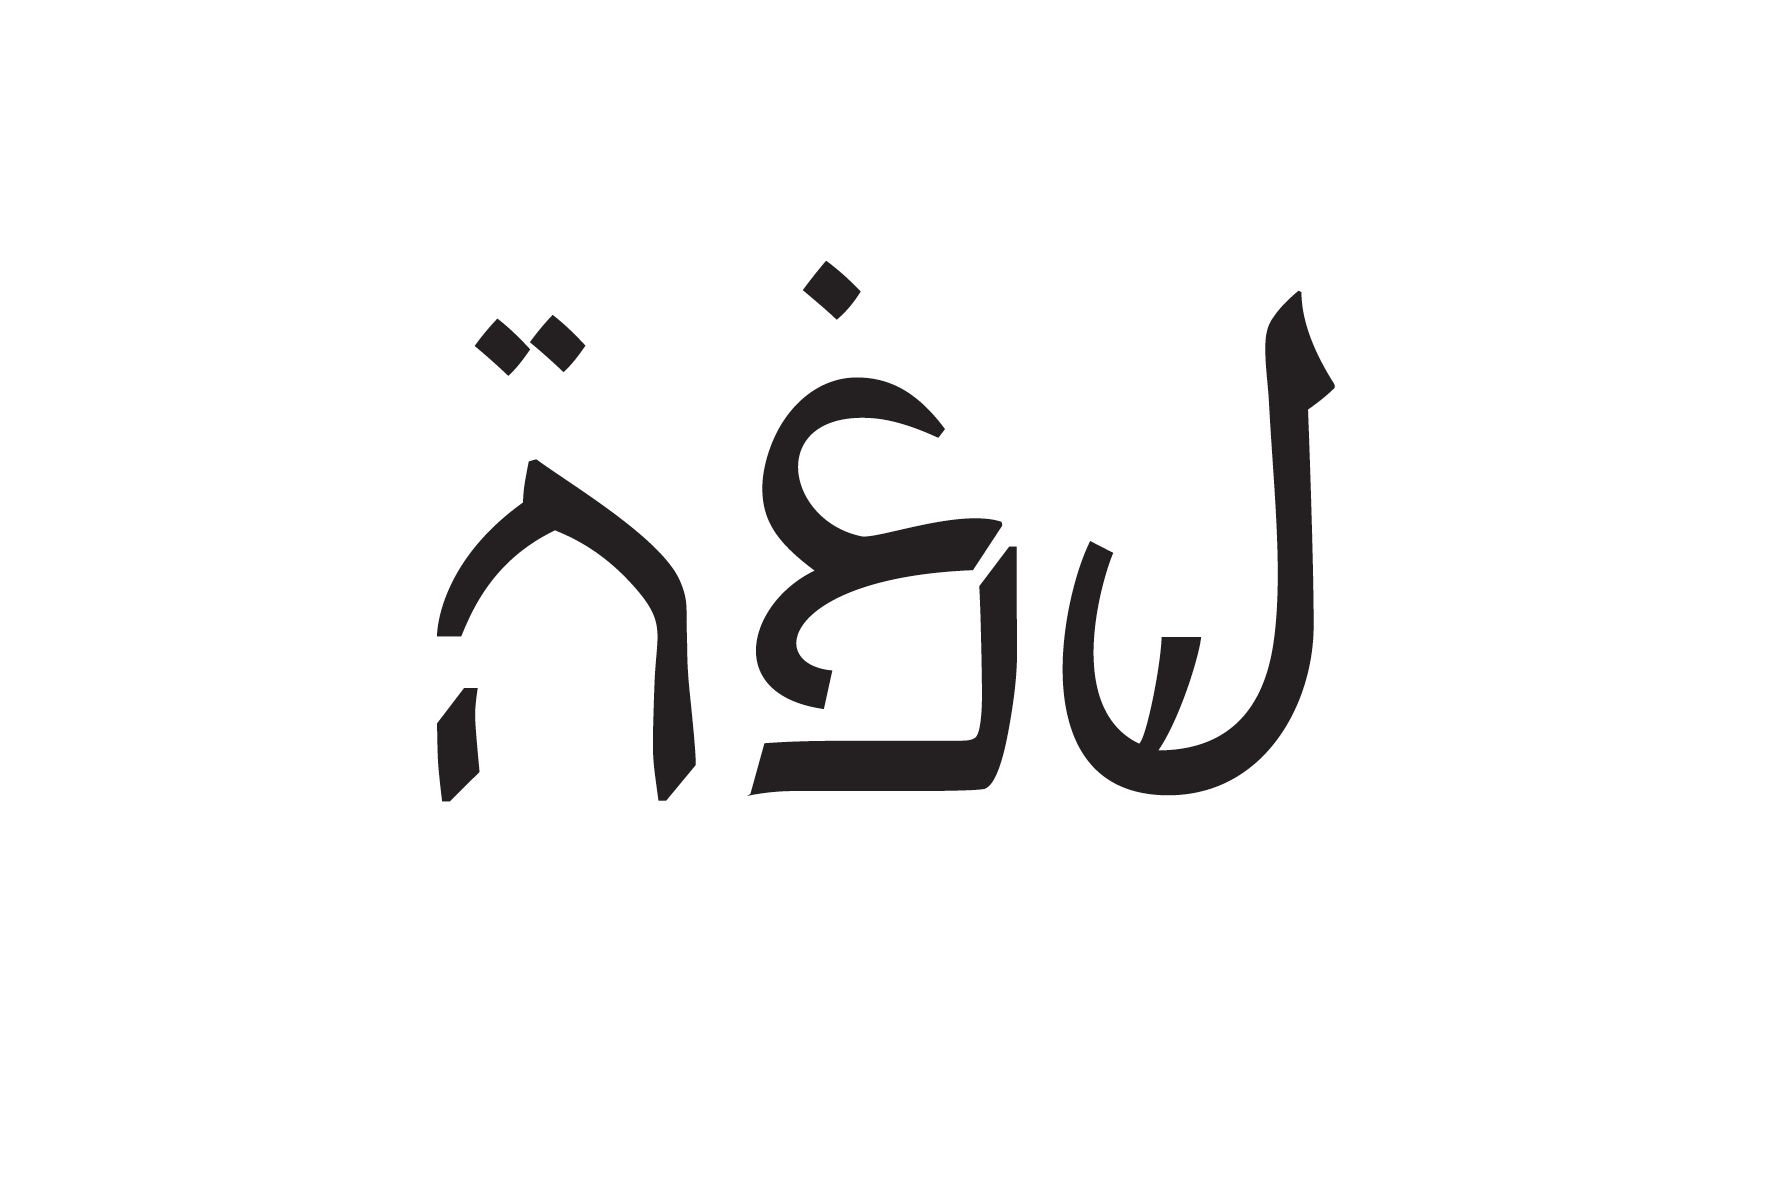 The language of co-existence: a new typeface combining Hebrew and Arabic